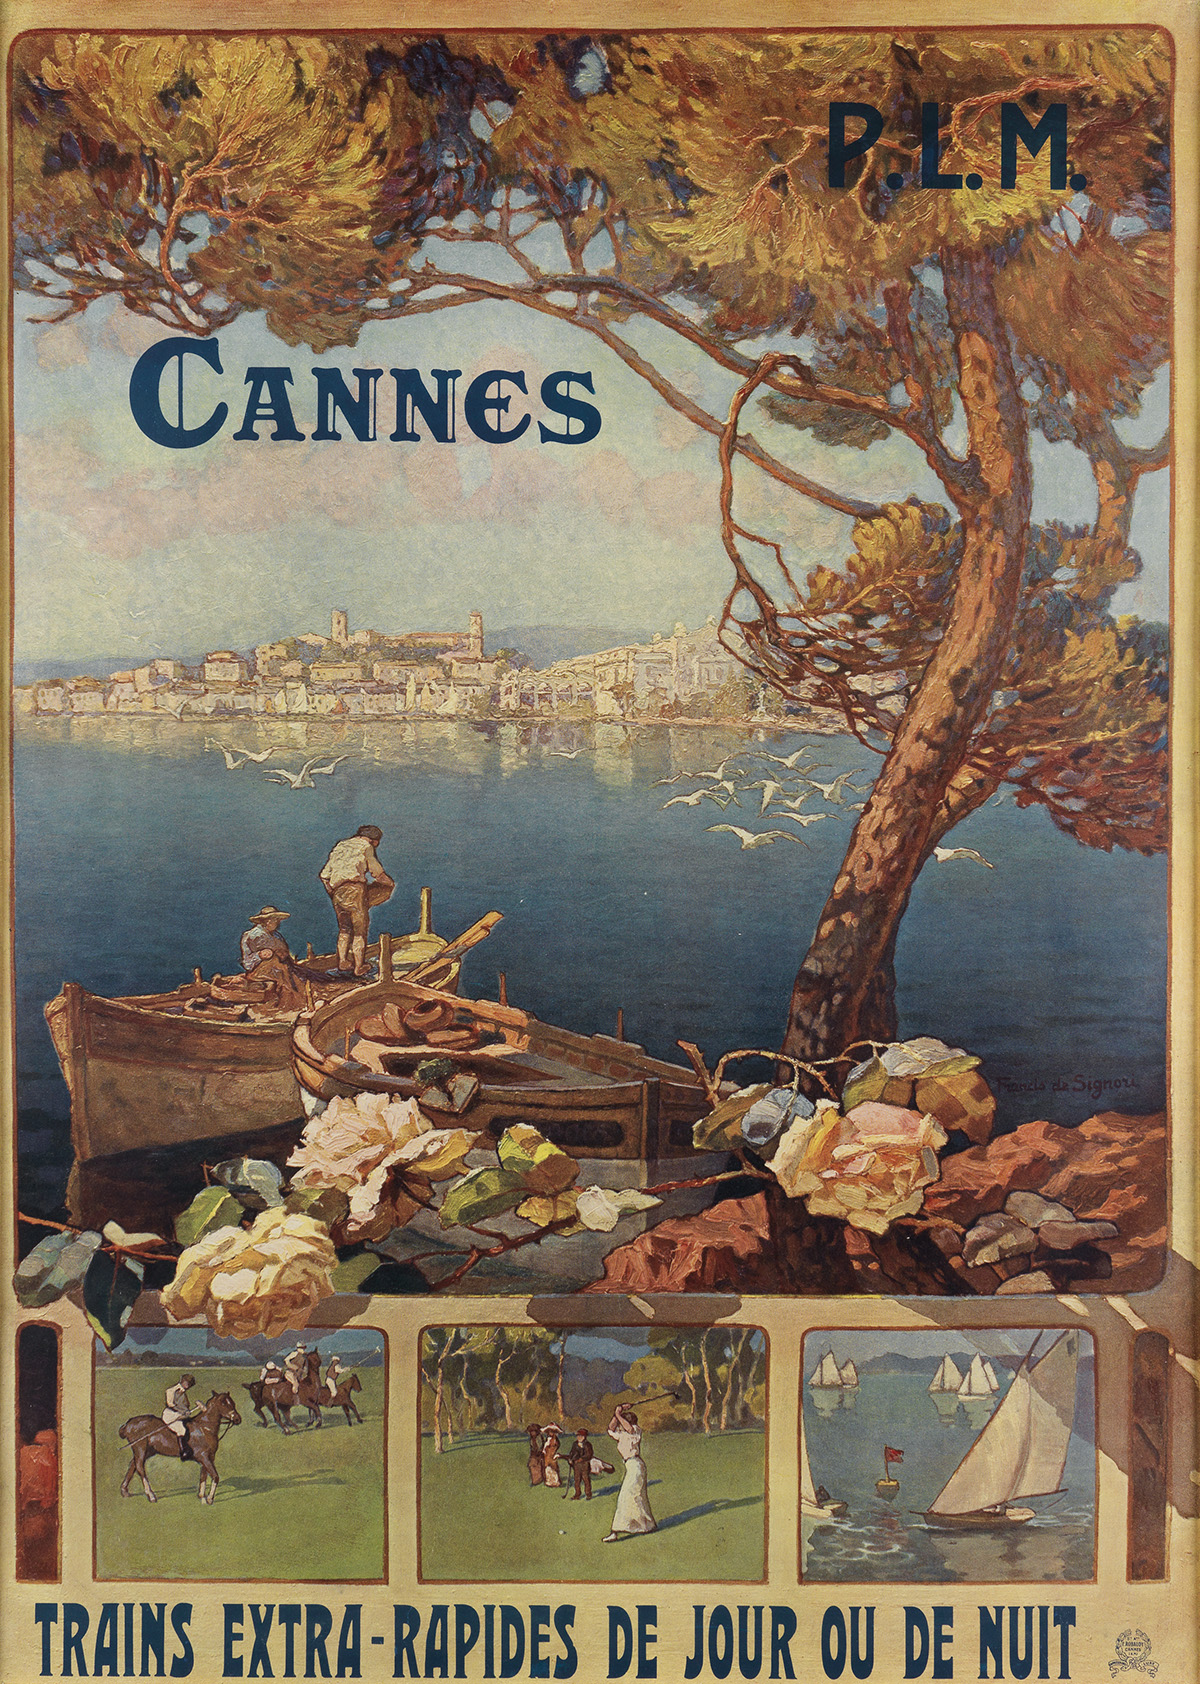 FRANCIS-DI-SIGNORI-(DATES-UNKNOWN)-CANNES-PLM-Circa-1910-40x